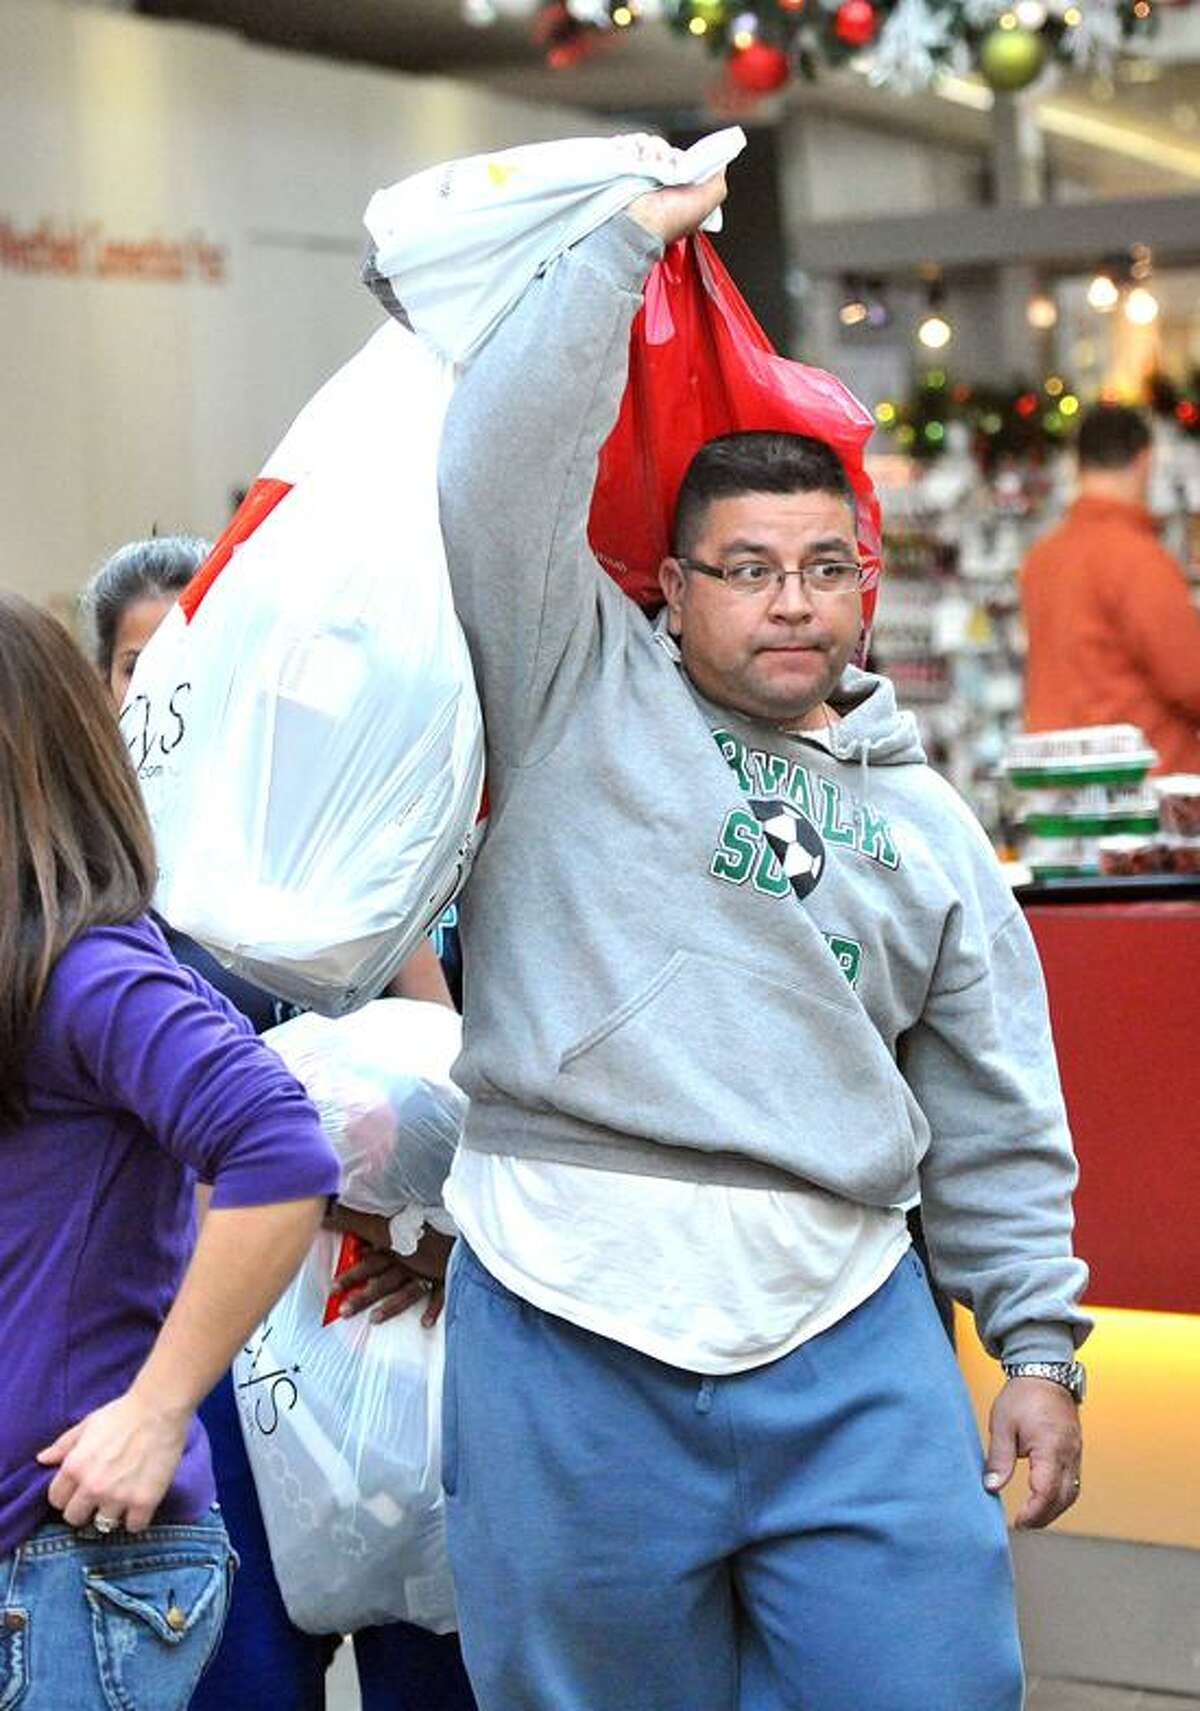 John Arteaga of Bridgeport weaves his way through the crowds at the Westfield Milford Post Mall as he does his holiday shopping. Peter Casolino/New Haven Register